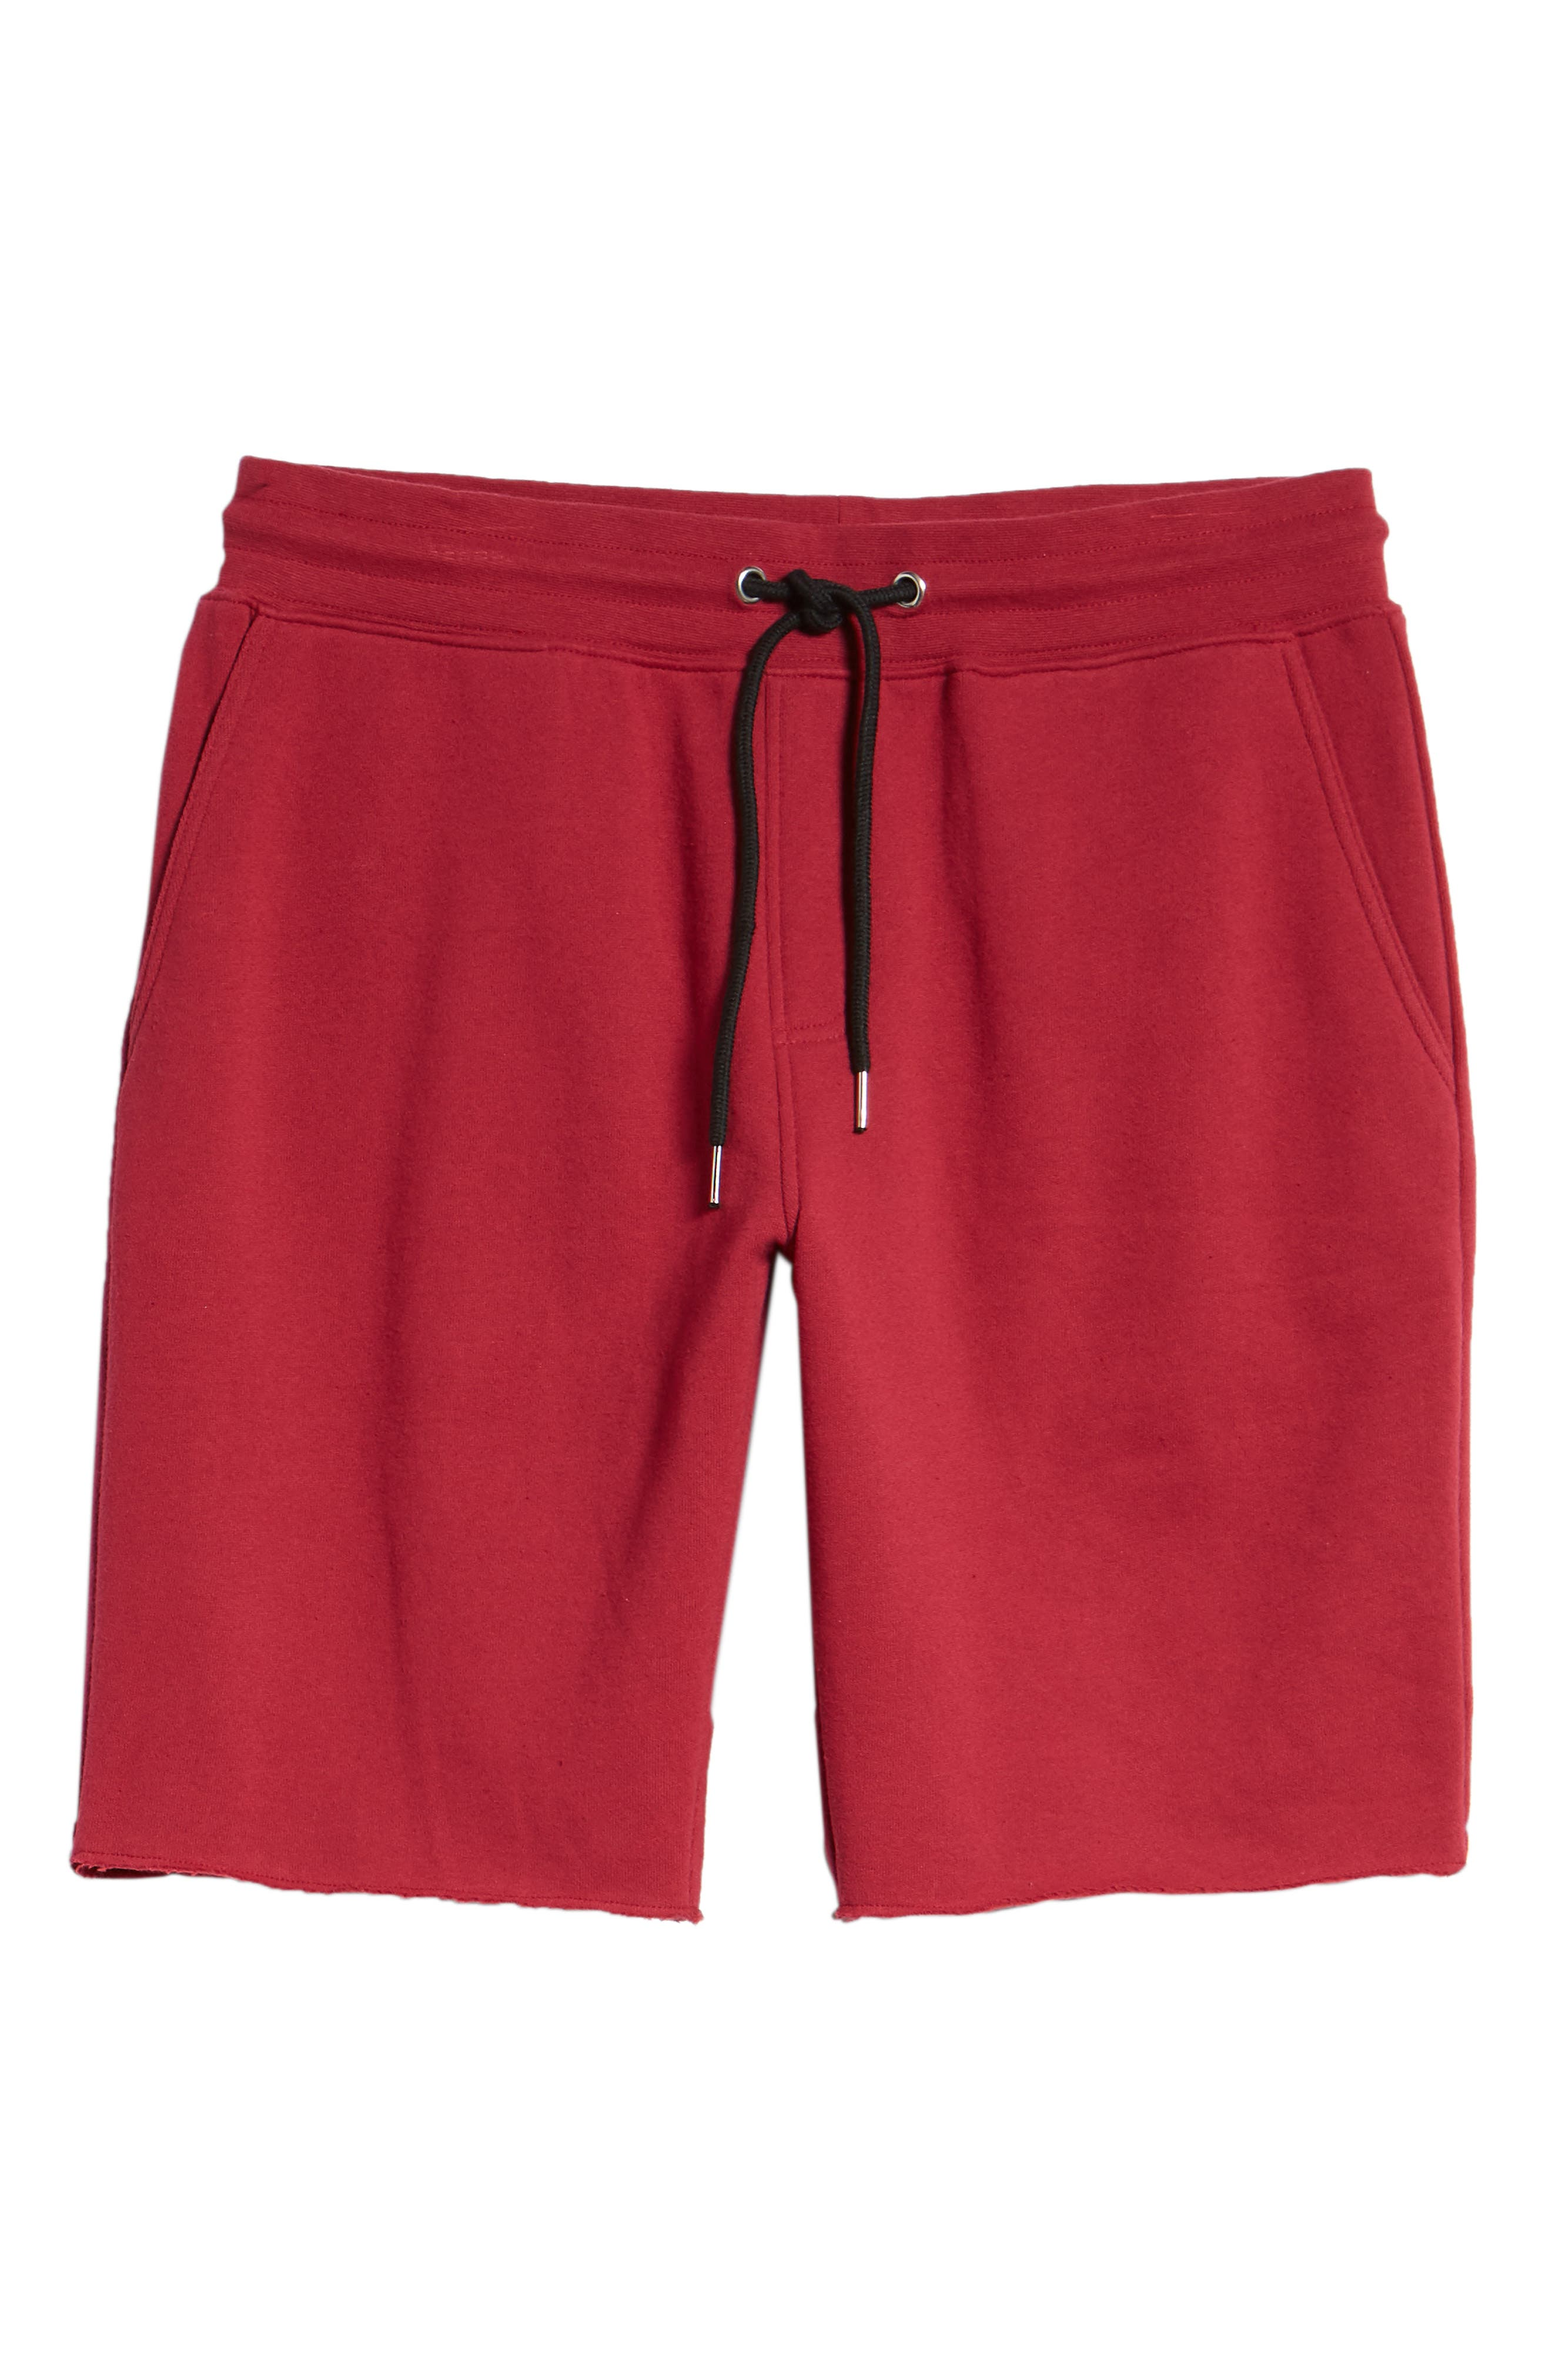 THE RAIL,                             Fleece Shorts,                             Alternate thumbnail 6, color,                             601